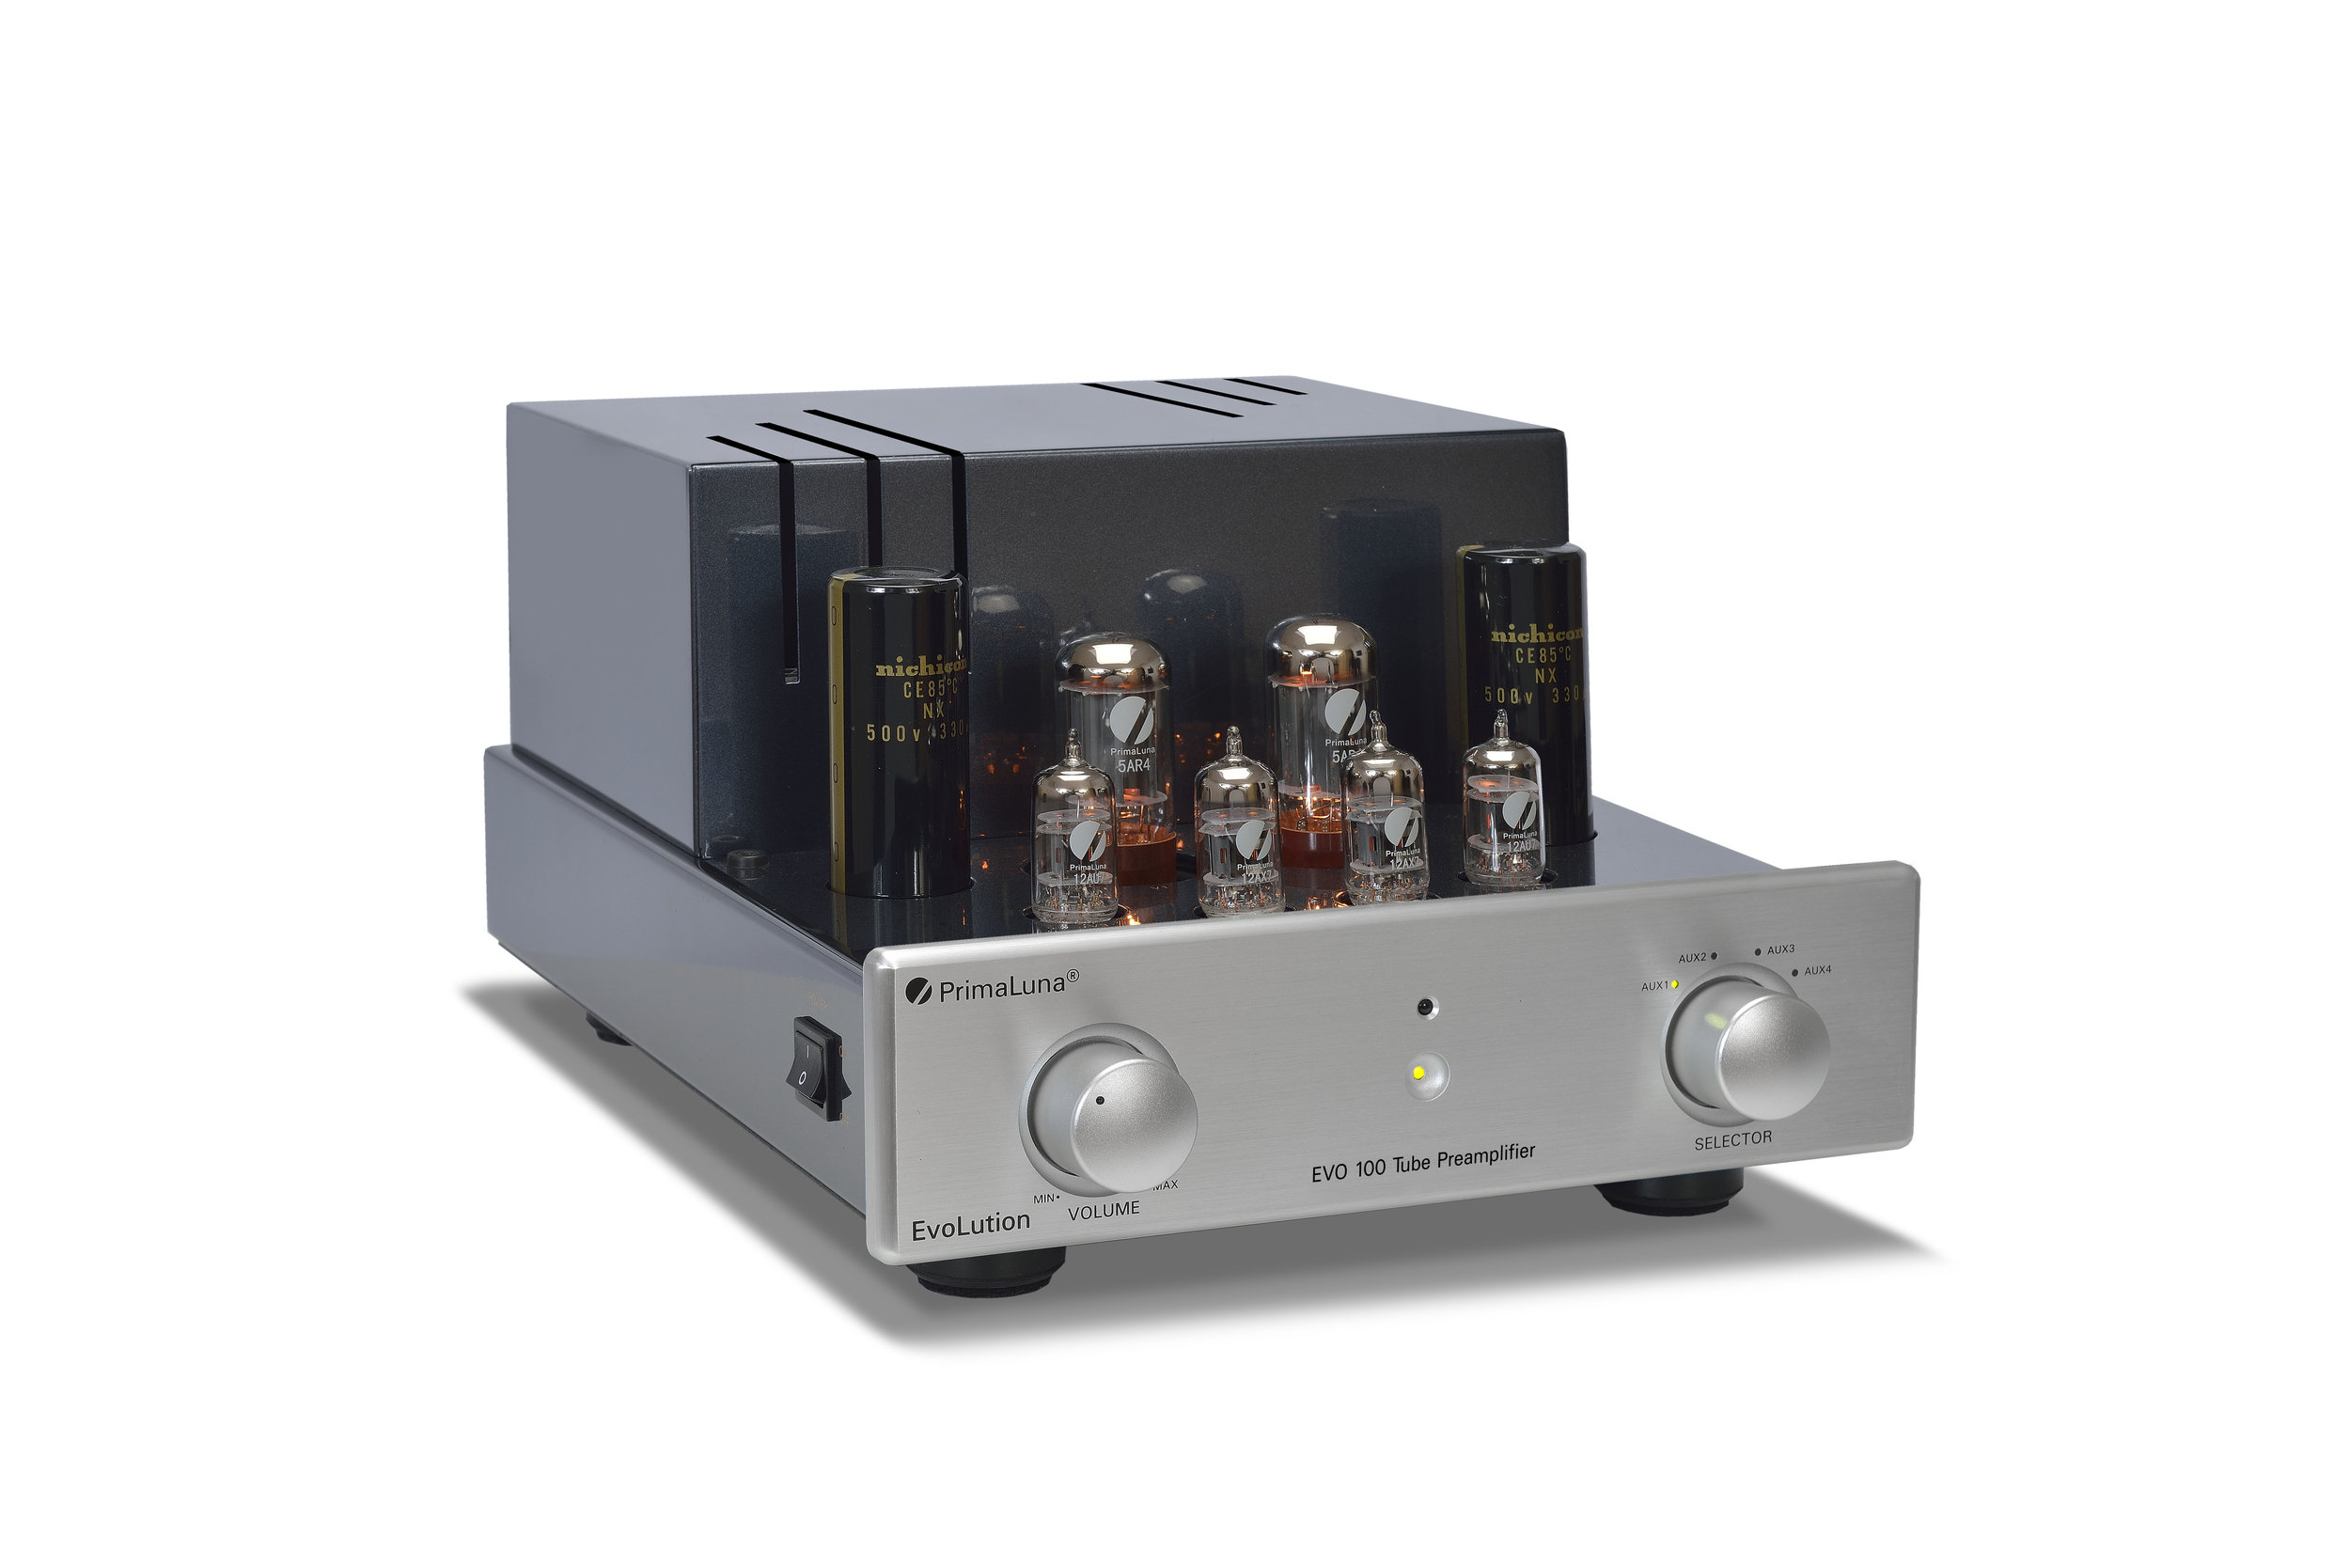 153b - PrimaLuna EVO 100 Tube Preamplifier - silver - slanted - without cage - white background.jpg